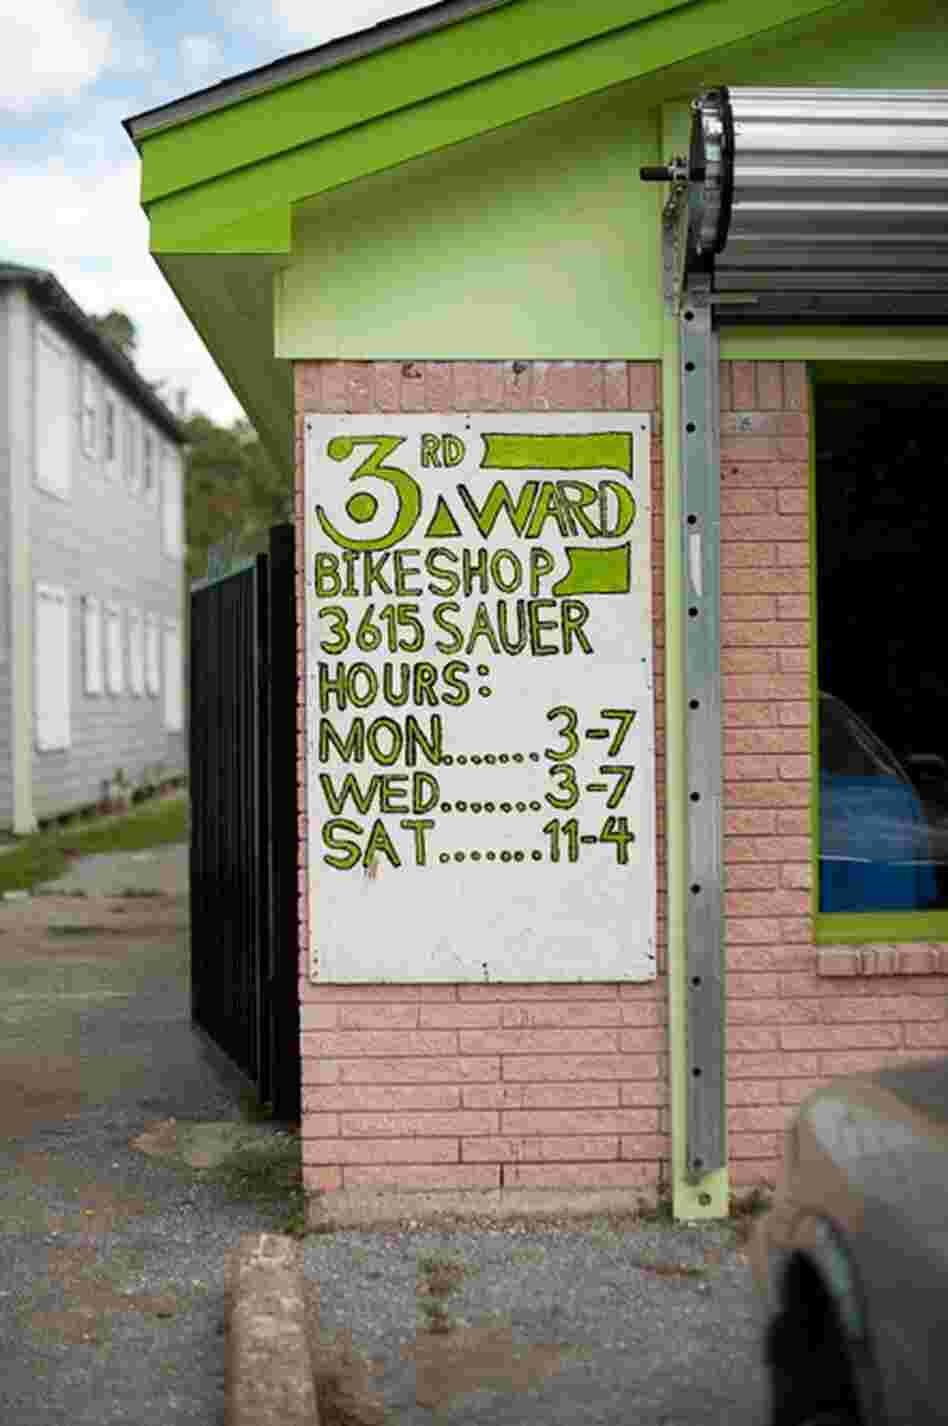 The Third Ward Community Bike Shop is helping to improve the area by offering do-it-yourself bike repair facilities and youth programs.